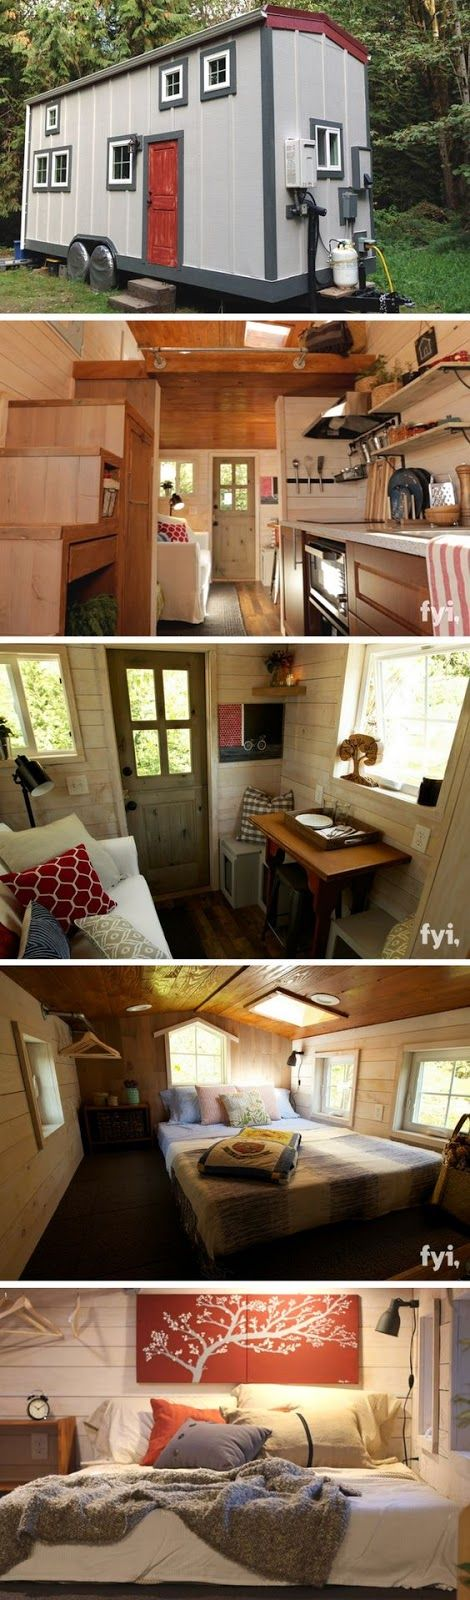 Excellent 17 Best Ideas About Tiny Houses For Sale On Pinterest Mini Largest Home Design Picture Inspirations Pitcheantrous